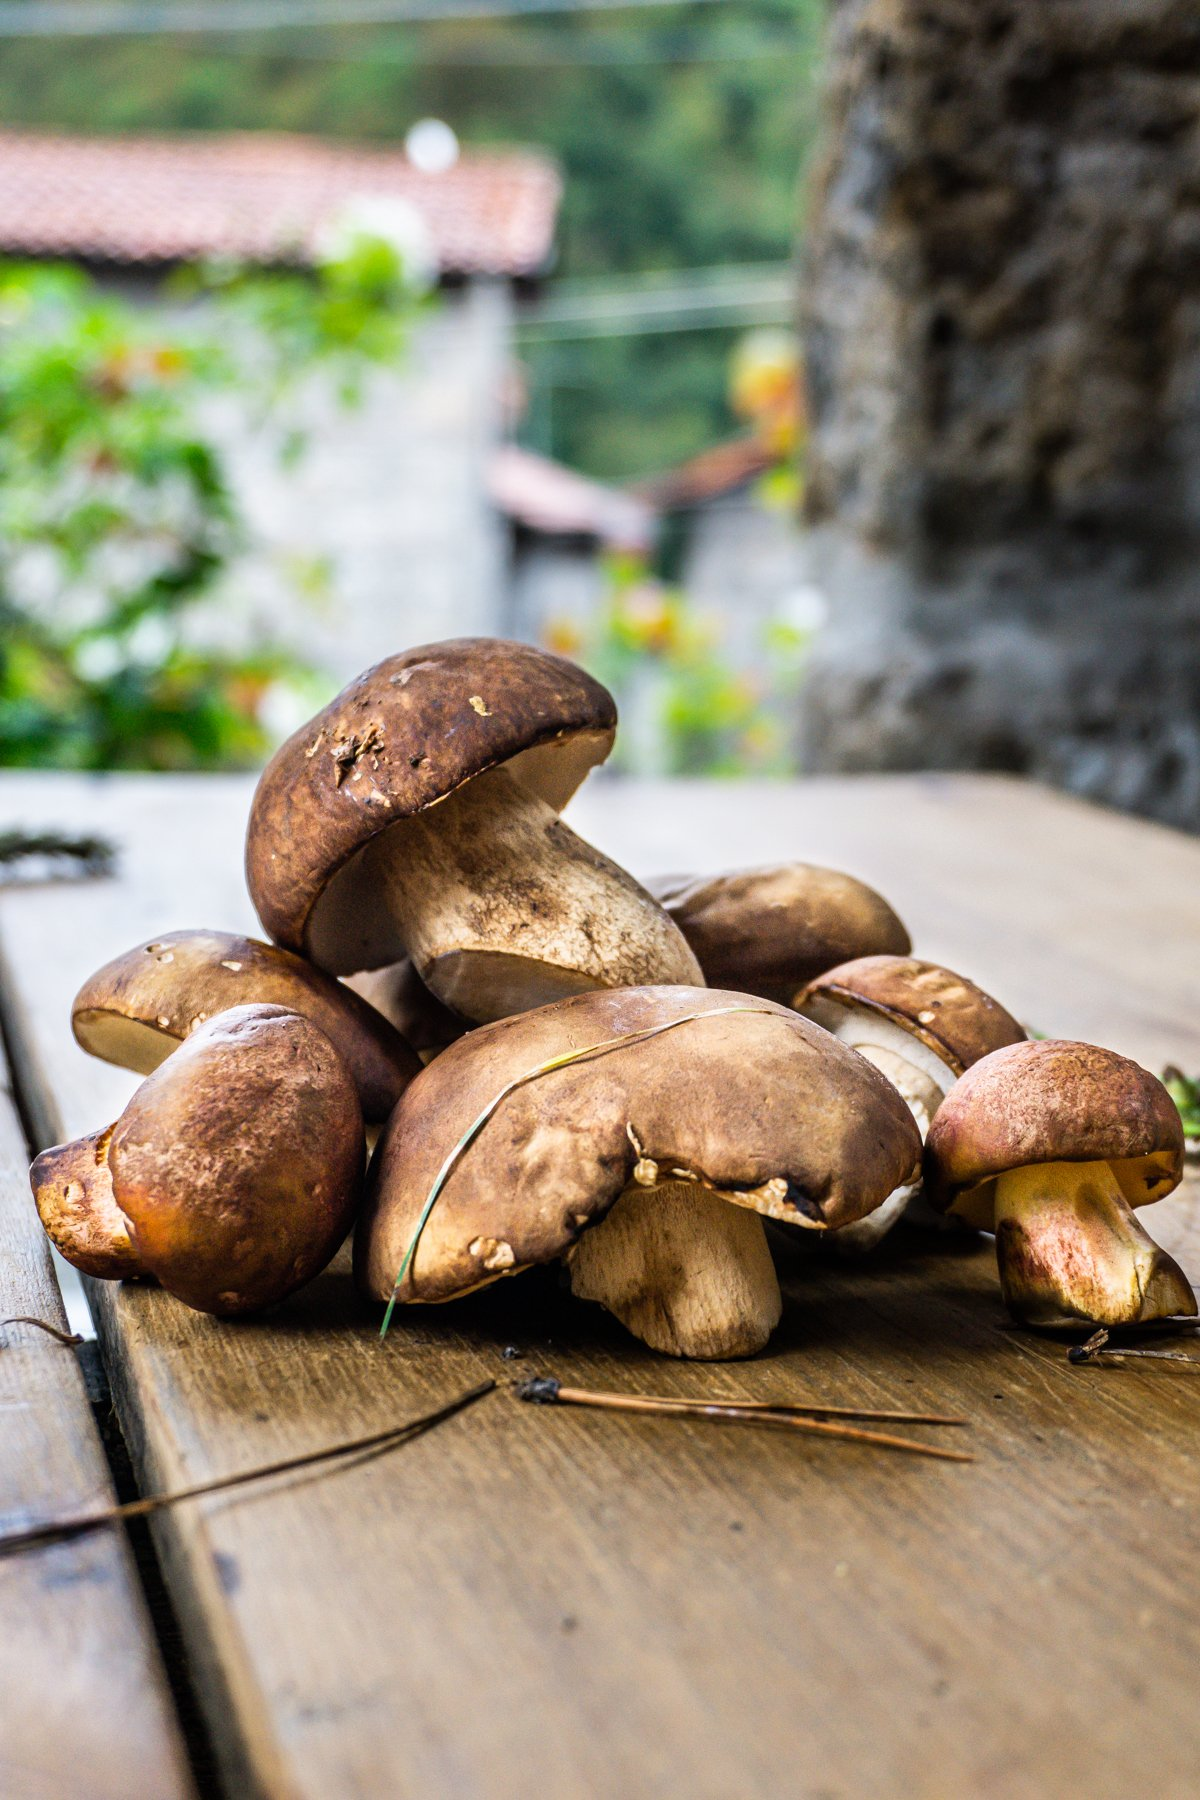 Wild mushrooms on a wooden table with greenery in the background